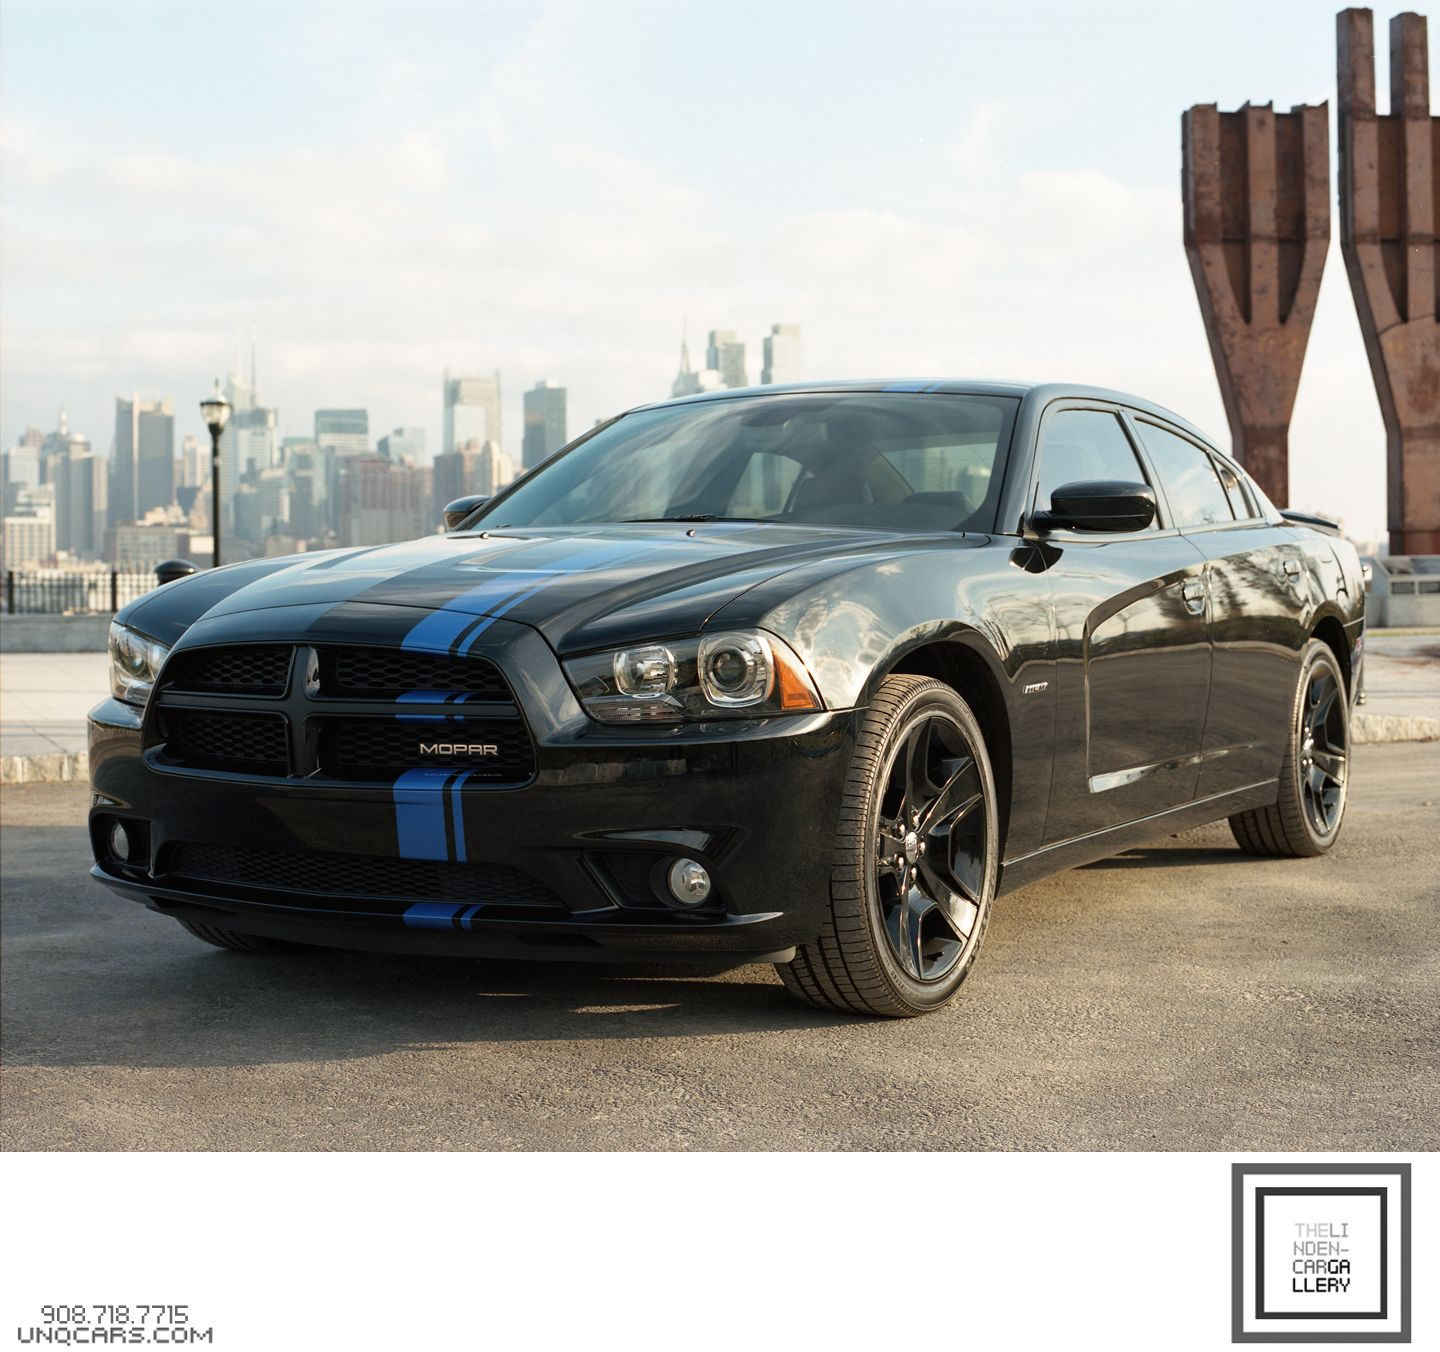 Pre-owned 2011 Dodge Charger Mopar Edition | For Sale | 14,717 ...